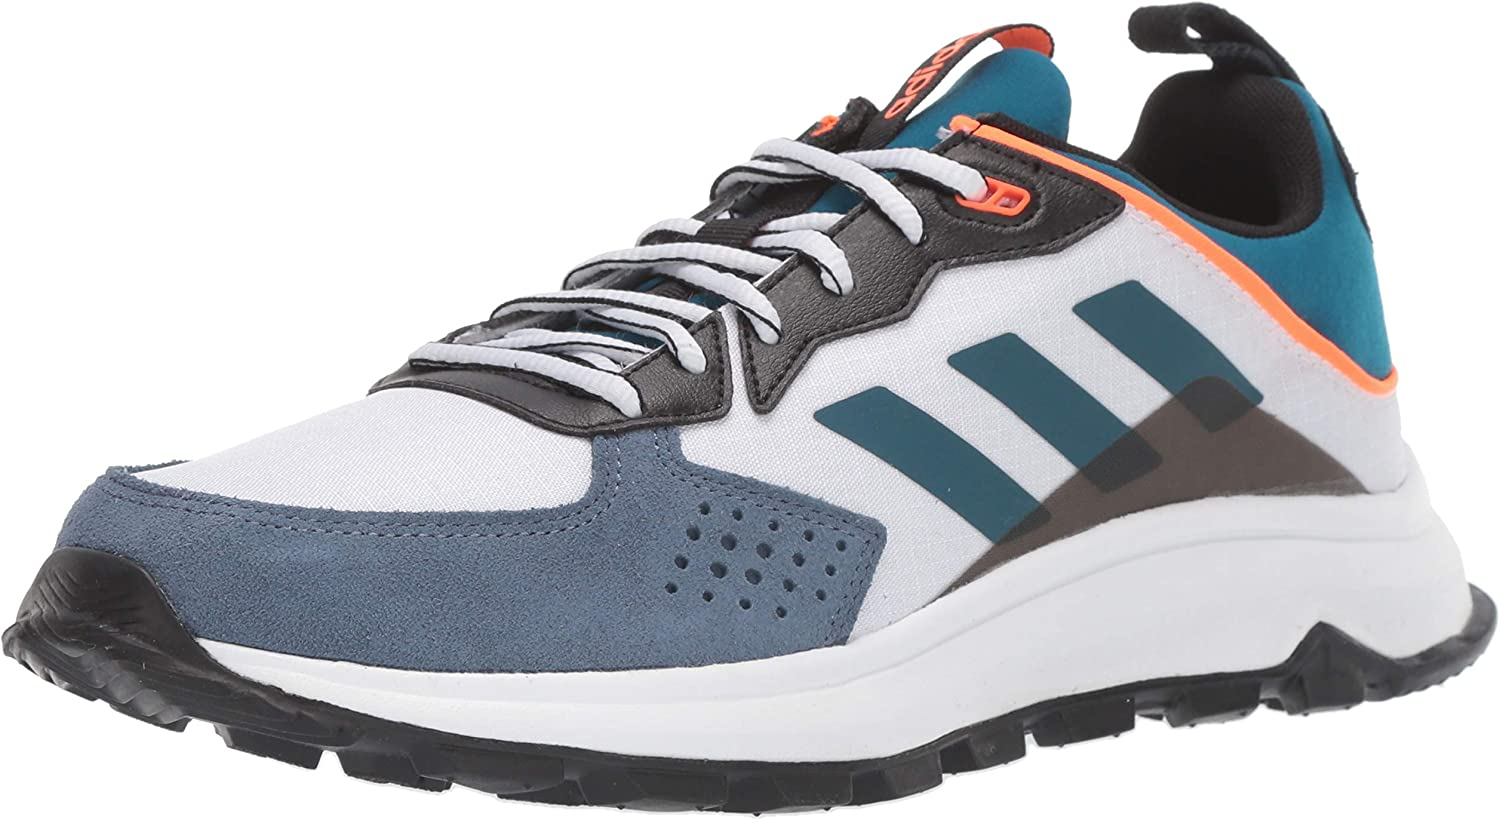 adidas Men s Response Trail Running Shoe